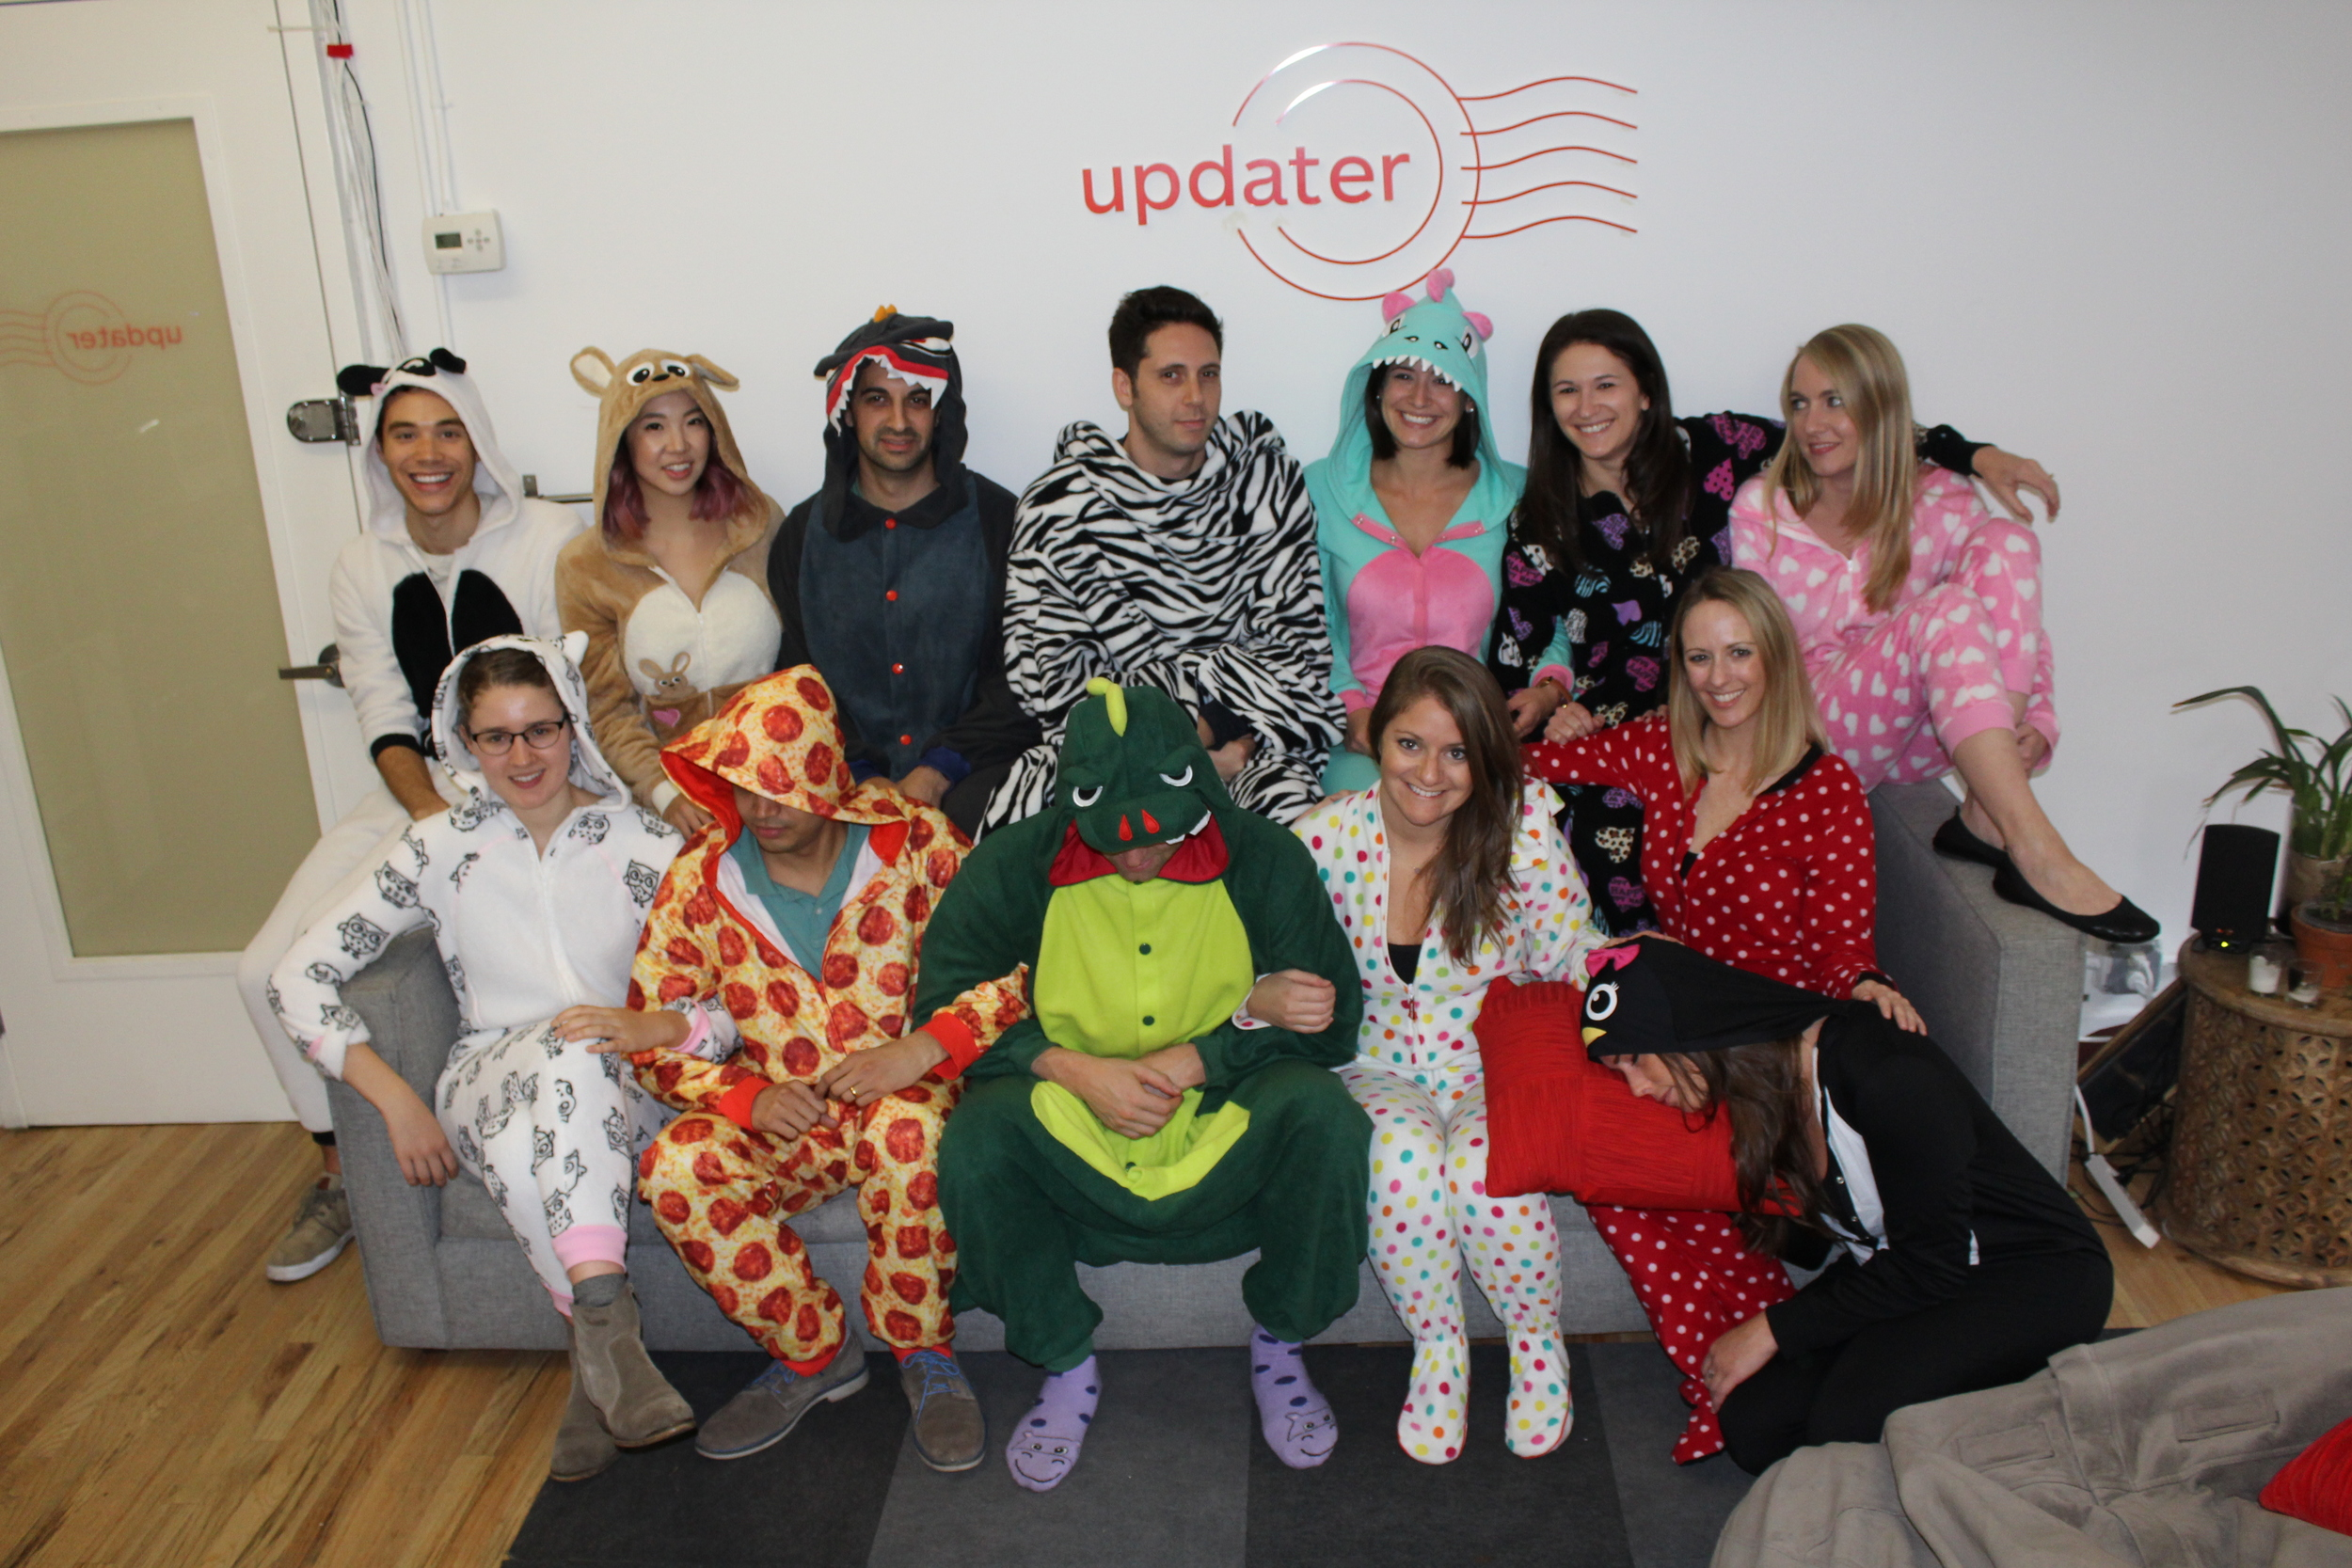 Most of our NYC team joined in! We're partial to the pizza getup in the front row.